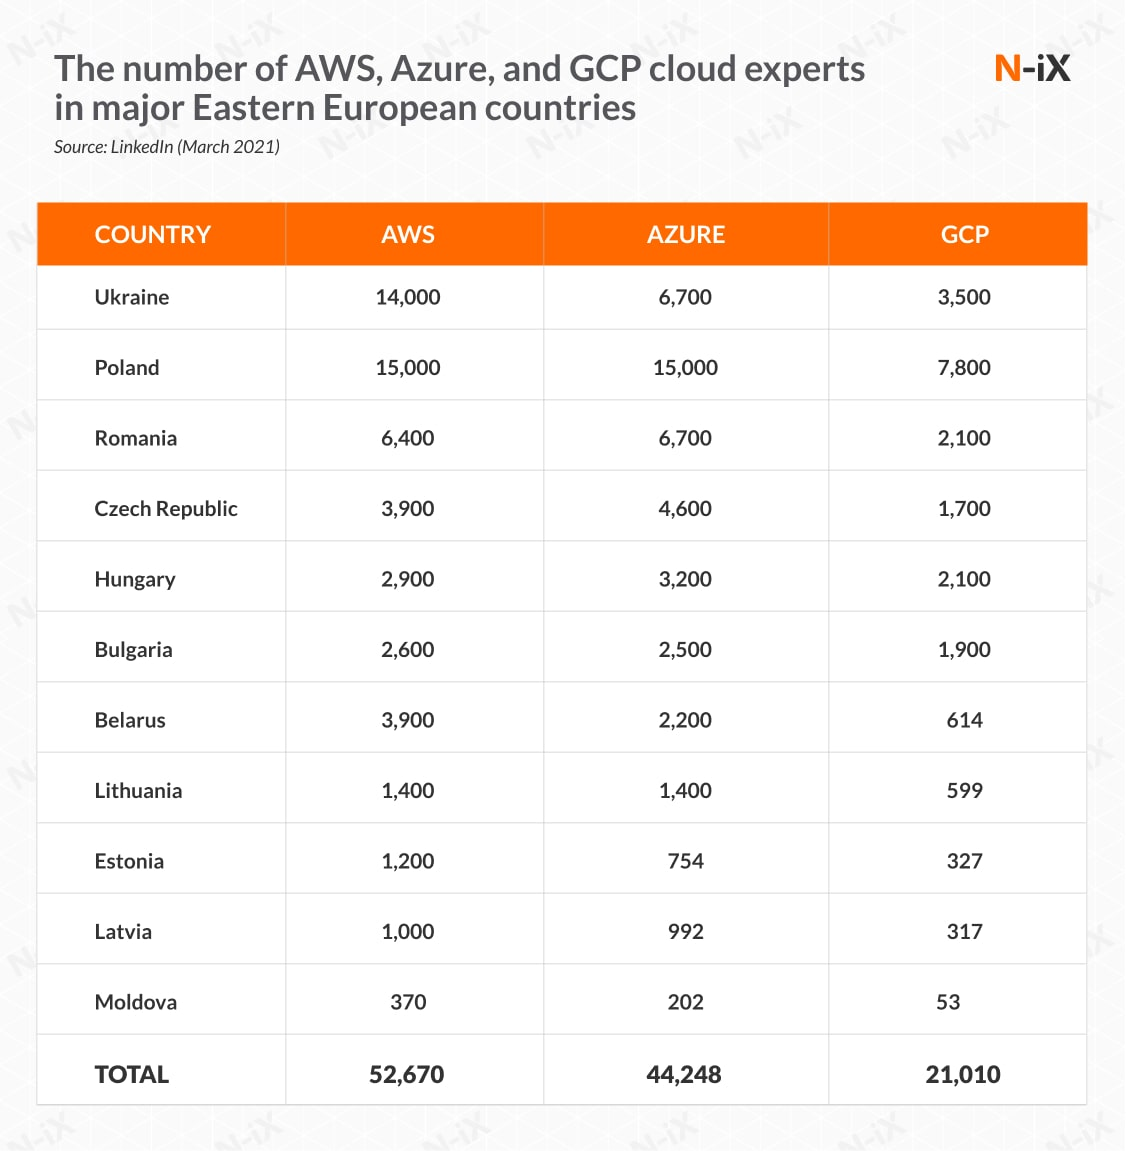 The number of AWS, Azure, and GCP experts in Eastern Europe